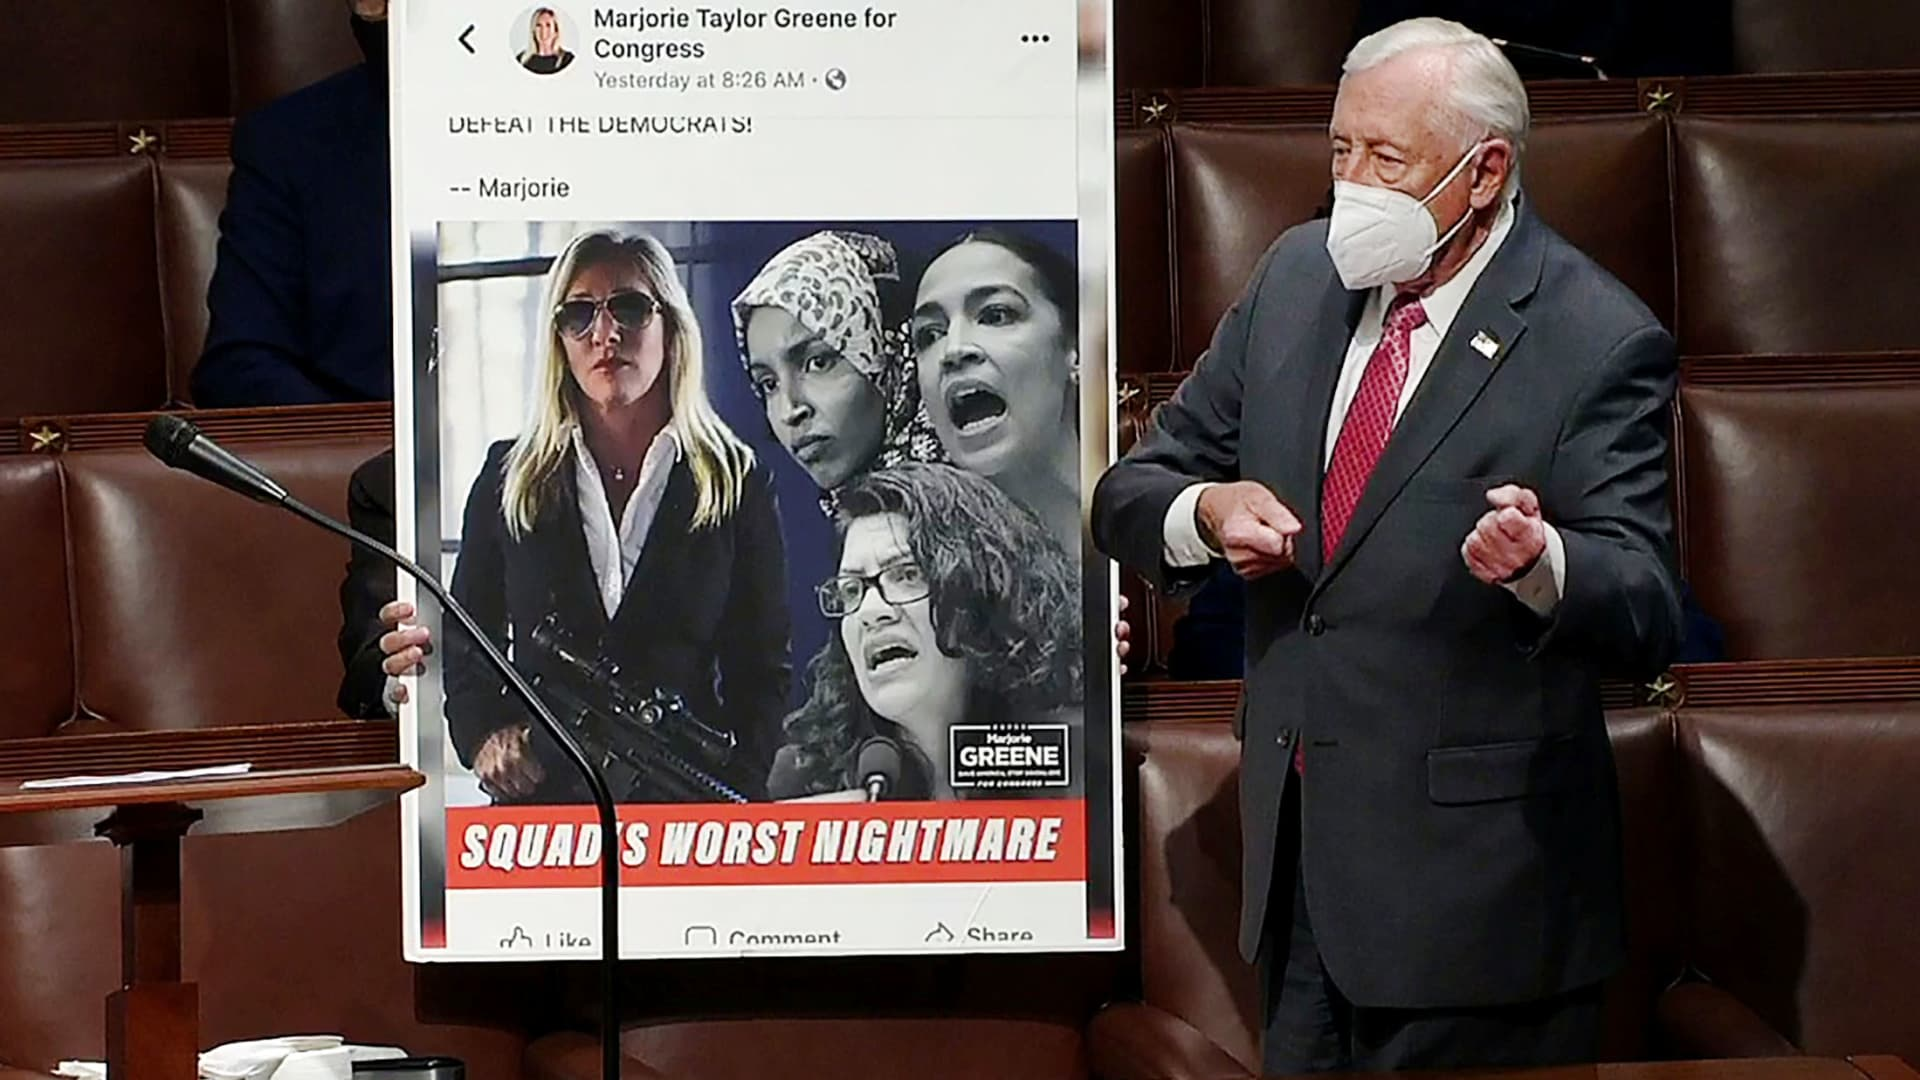 U.S. House Majority Leader Steny Hoyer (D-MD) mimics holding a gun next to an enlarged Tweet as he speaks during debate ahead of a House of Representatives vote on a Democratic-backed resolution that would punish Republican congresswoman Marjorie Taylor Greene, in this frame grab from video shot inside the House Chamber of the Capitol in Washington, February 4, 2021.